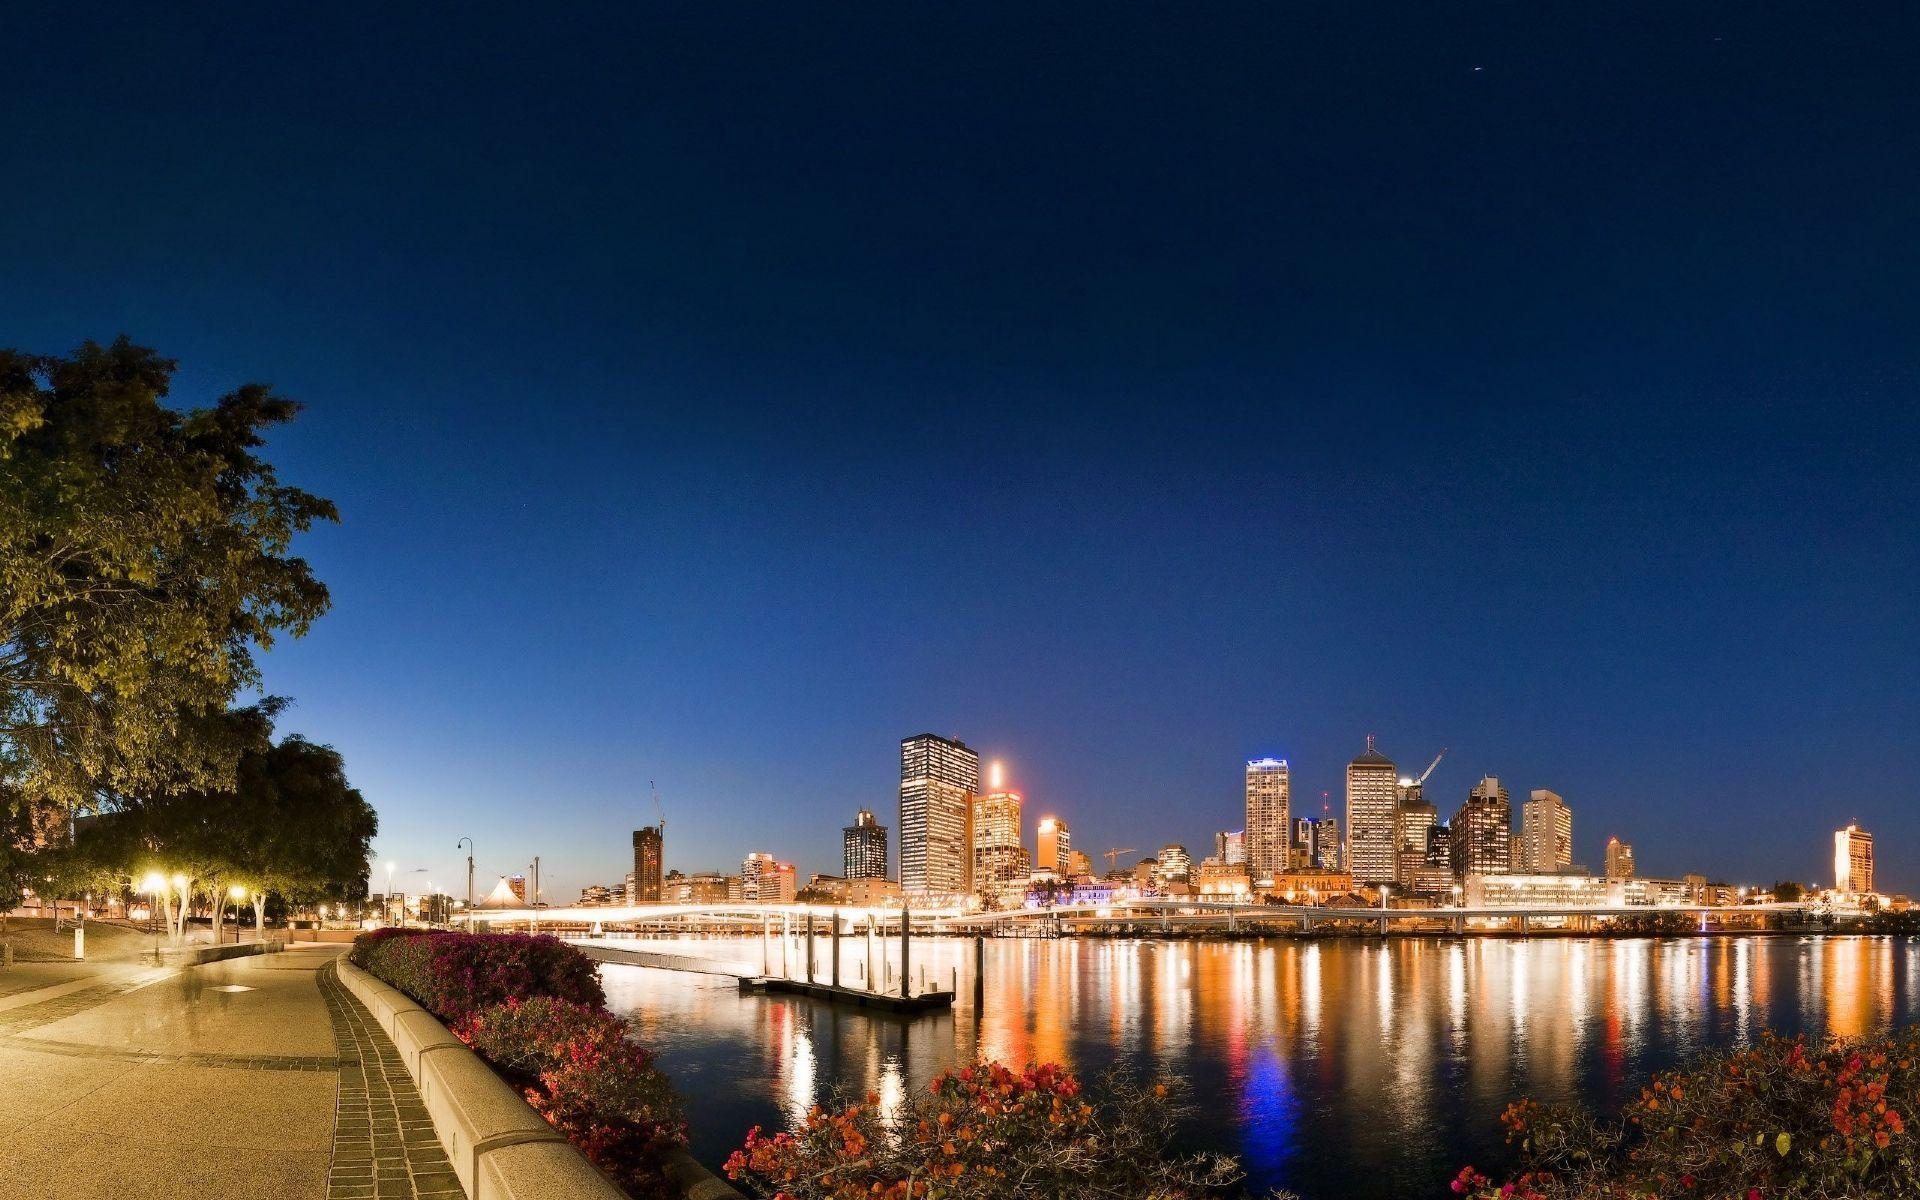 Awesome Brisbane HD Wallpapers - BsnSCB Gallery